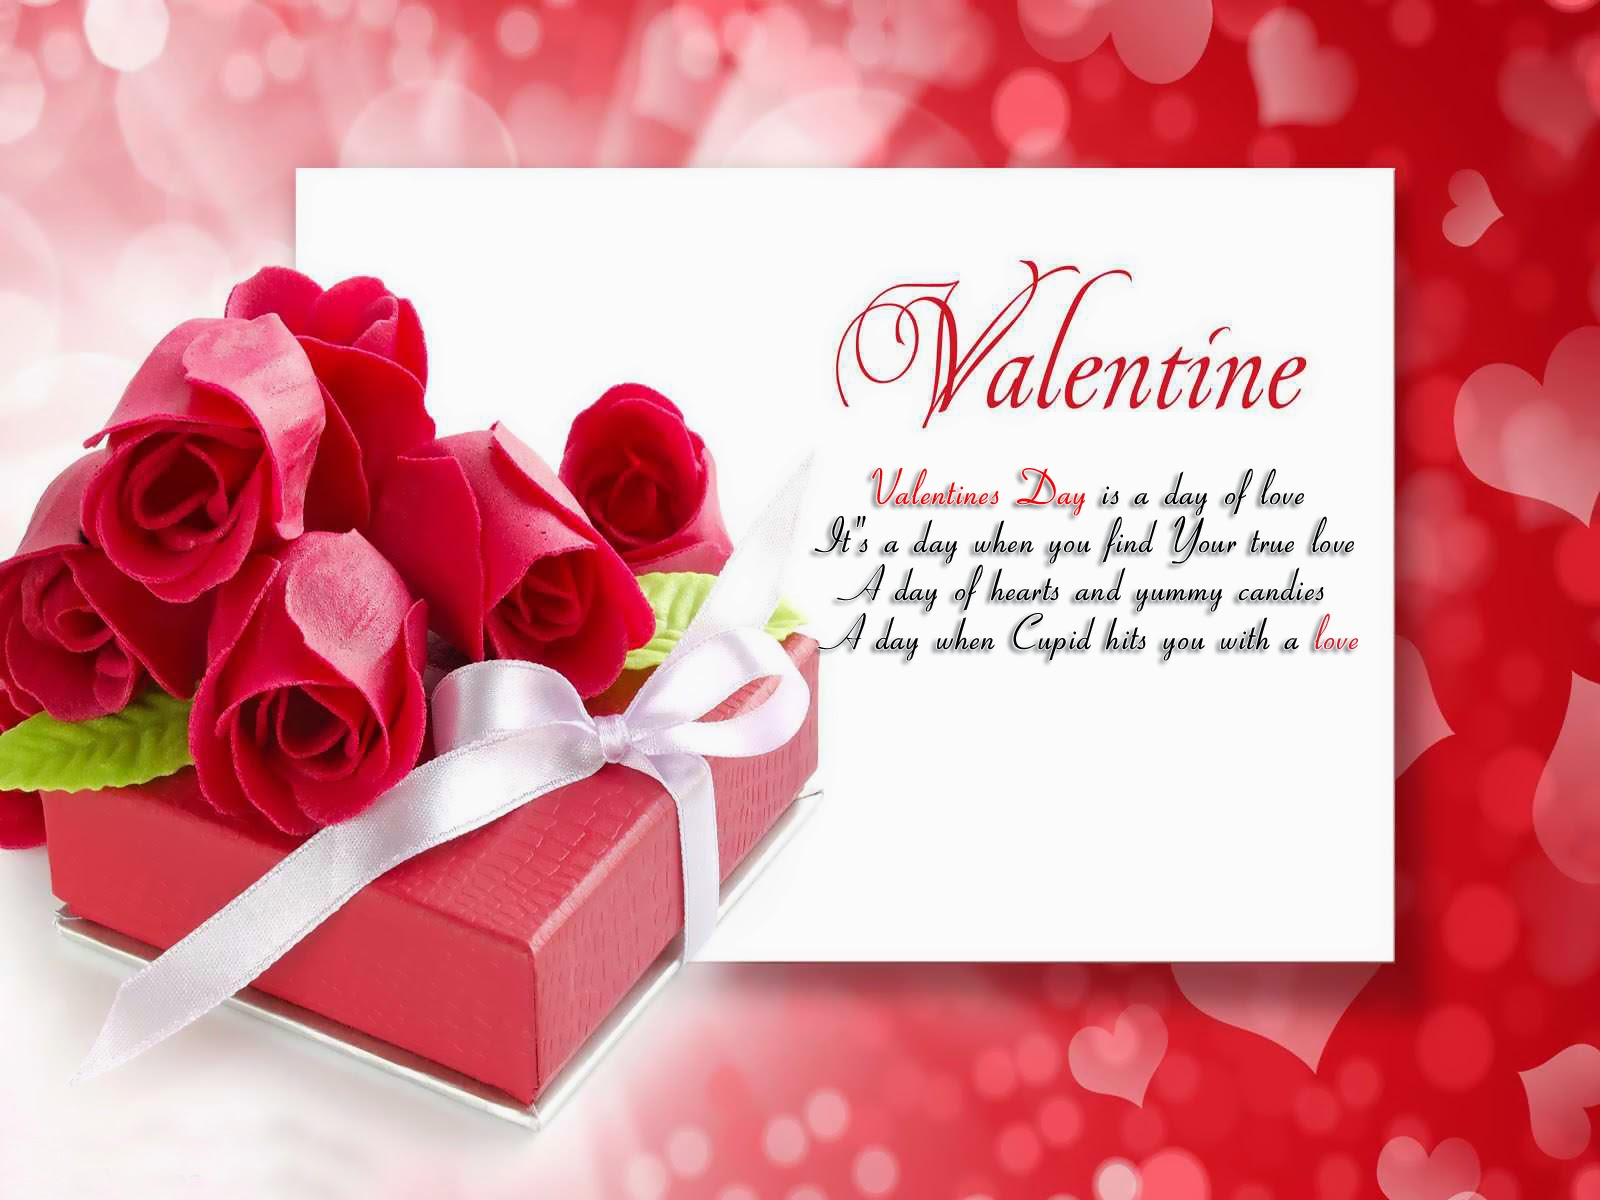 Rose Day Sms 2016 Messages Rose Day Quotes Greetings